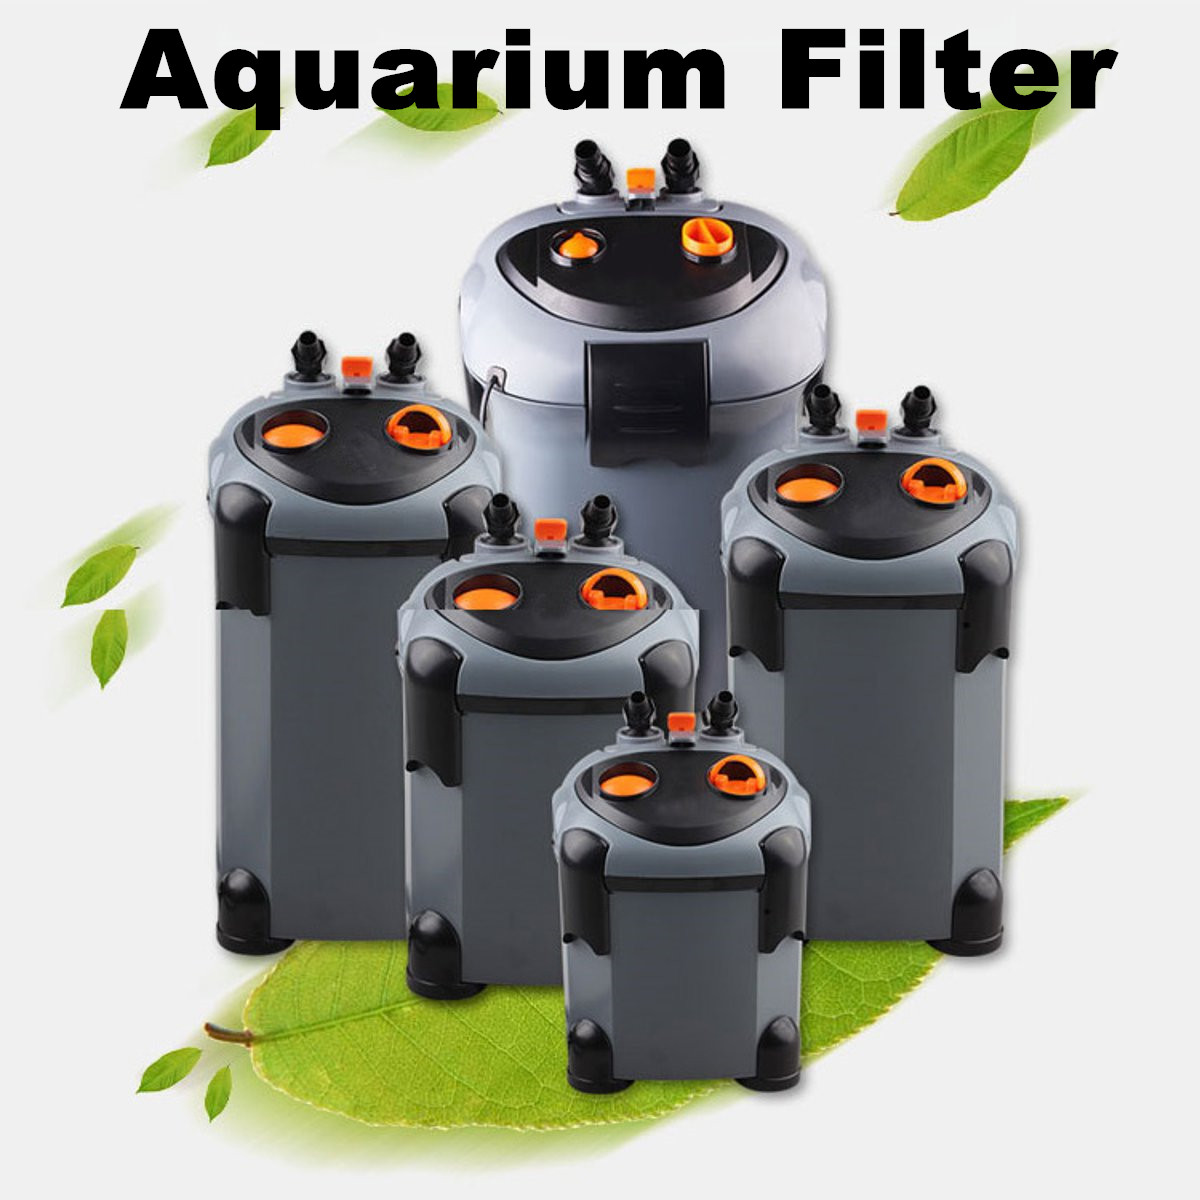 Aquarium External Water Filter Fish Tank Booster Canister Sponge Filtration Aquarium Pond Filtration System Filtering Barrel